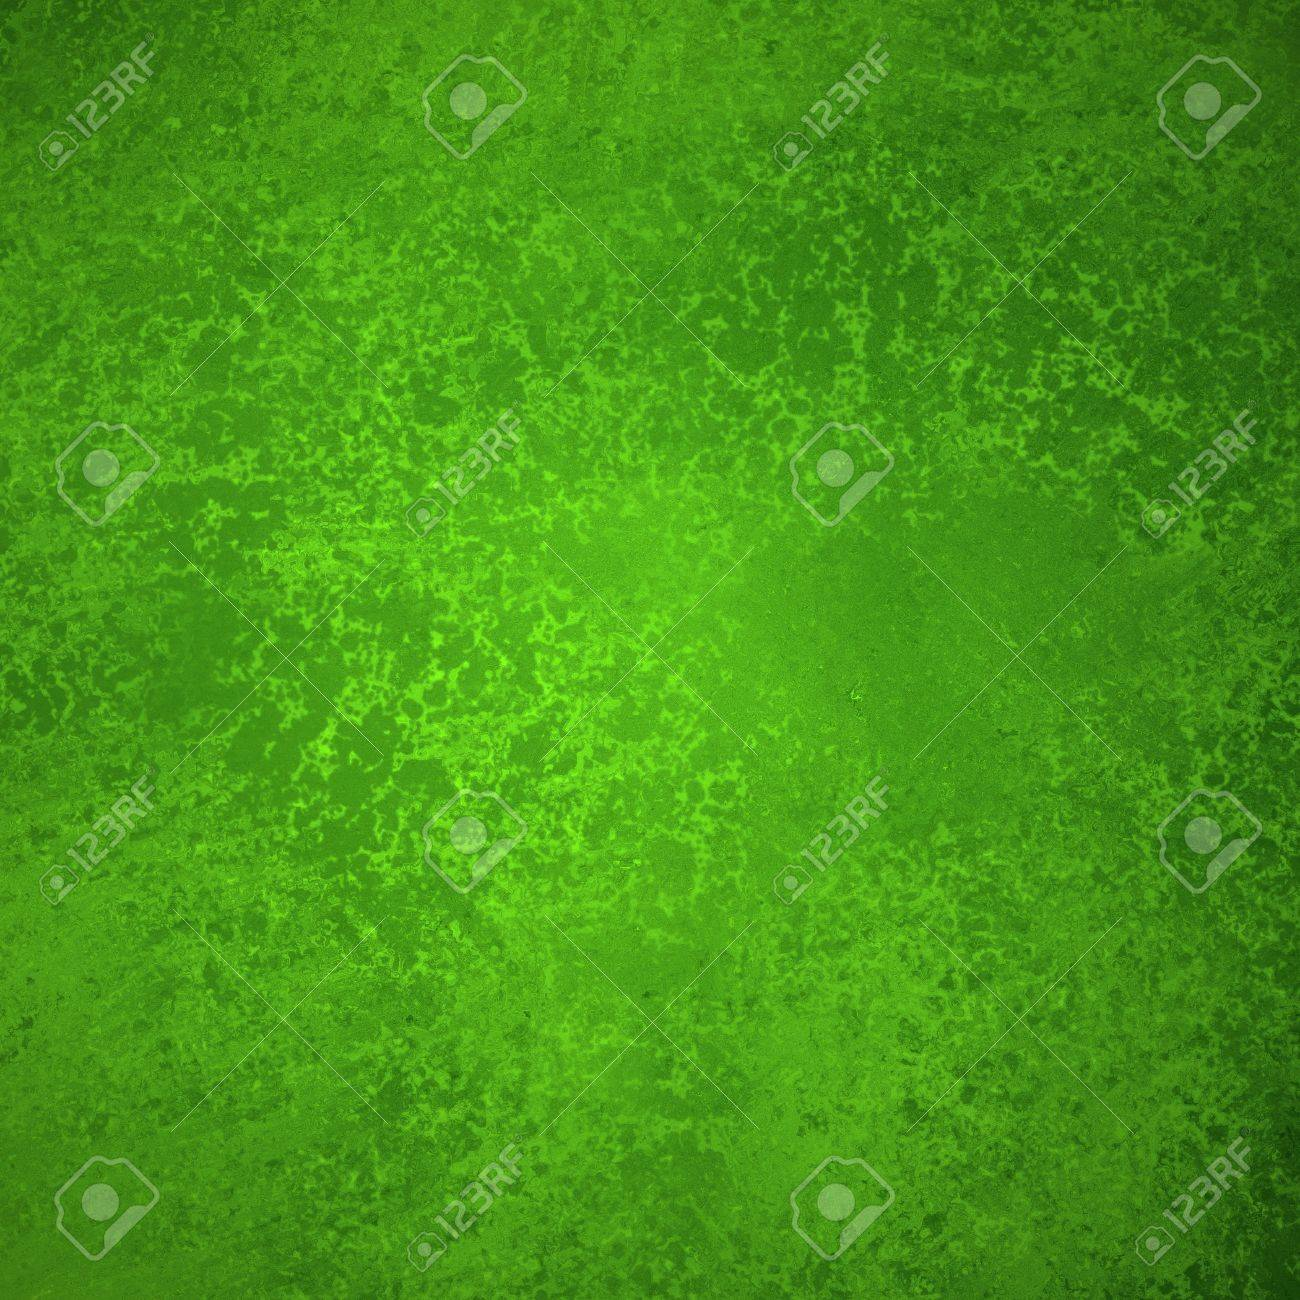 abstract green background Christmas design colors with sponge vintage grunge background texture, distressed rough smeary paint on wall, art canvas or board for brochure ad or website template Stock Photo - 24865353